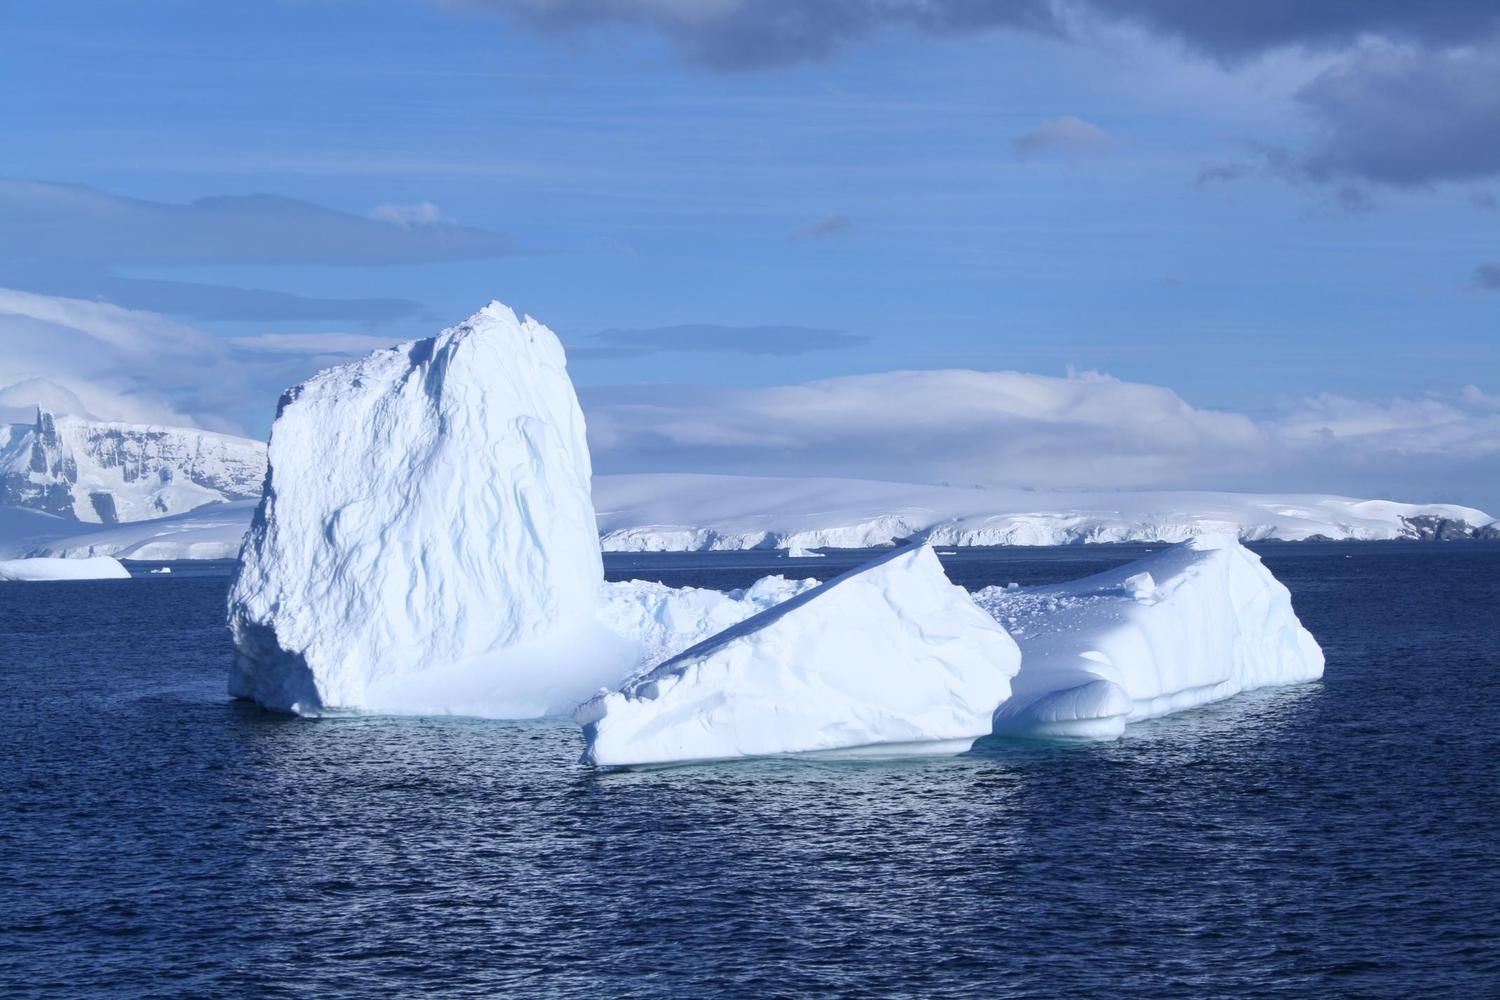 Beautiful icebergs continue even late in the summer season